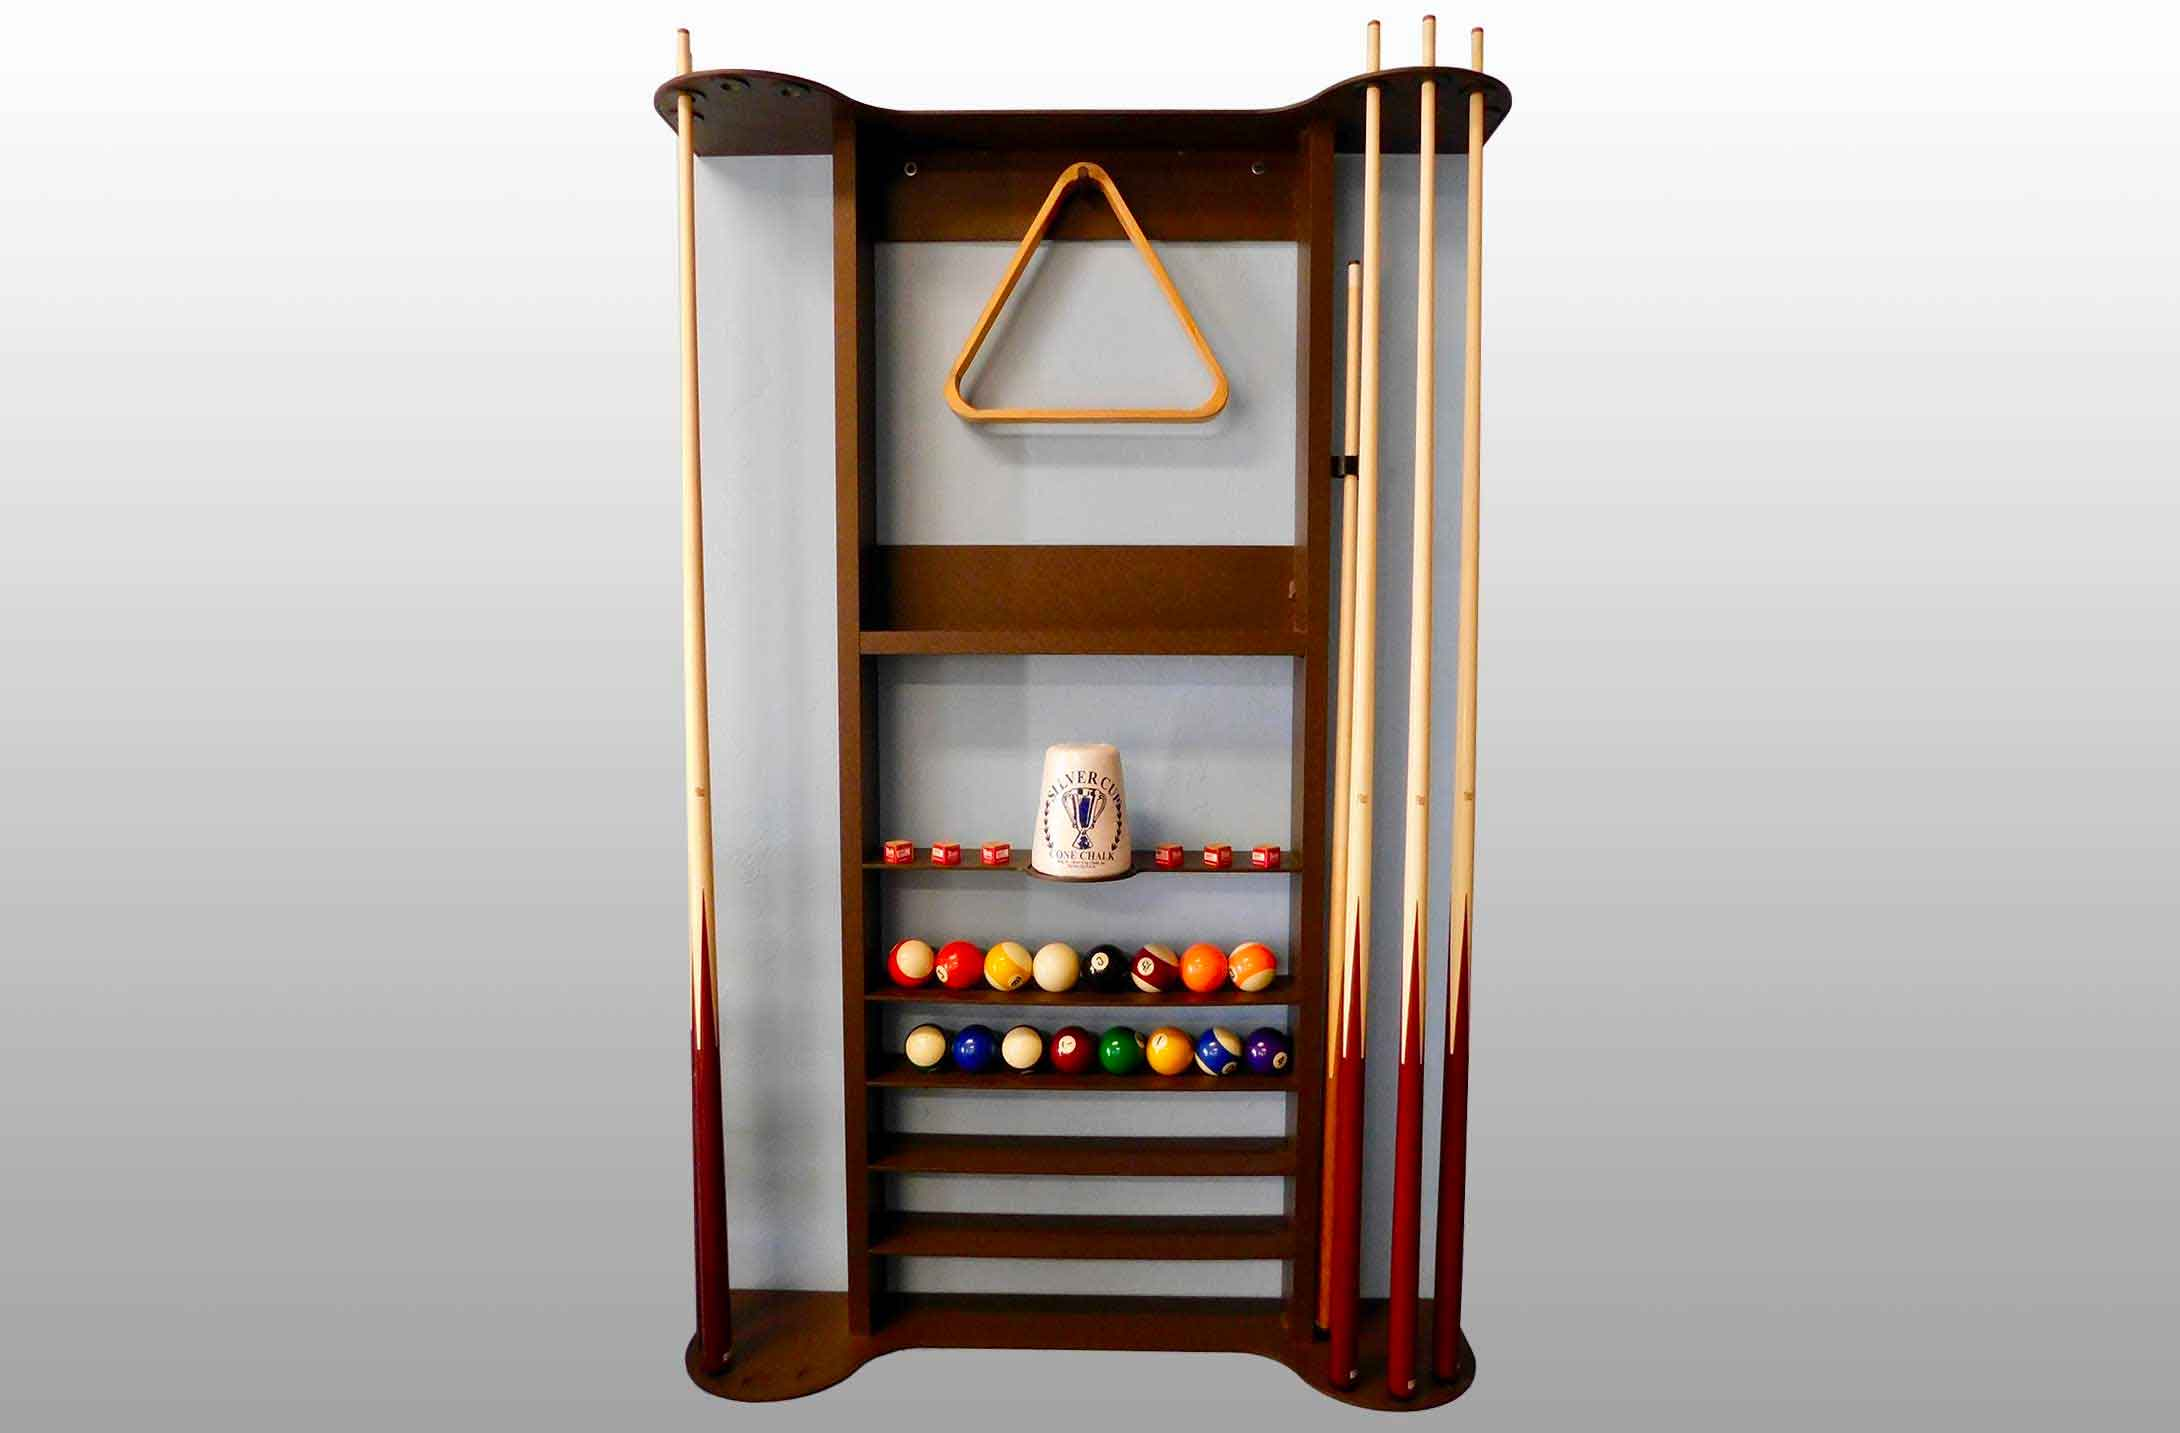 Wall mounted cue rack holder by R&R Outdoors All Weather Billiards